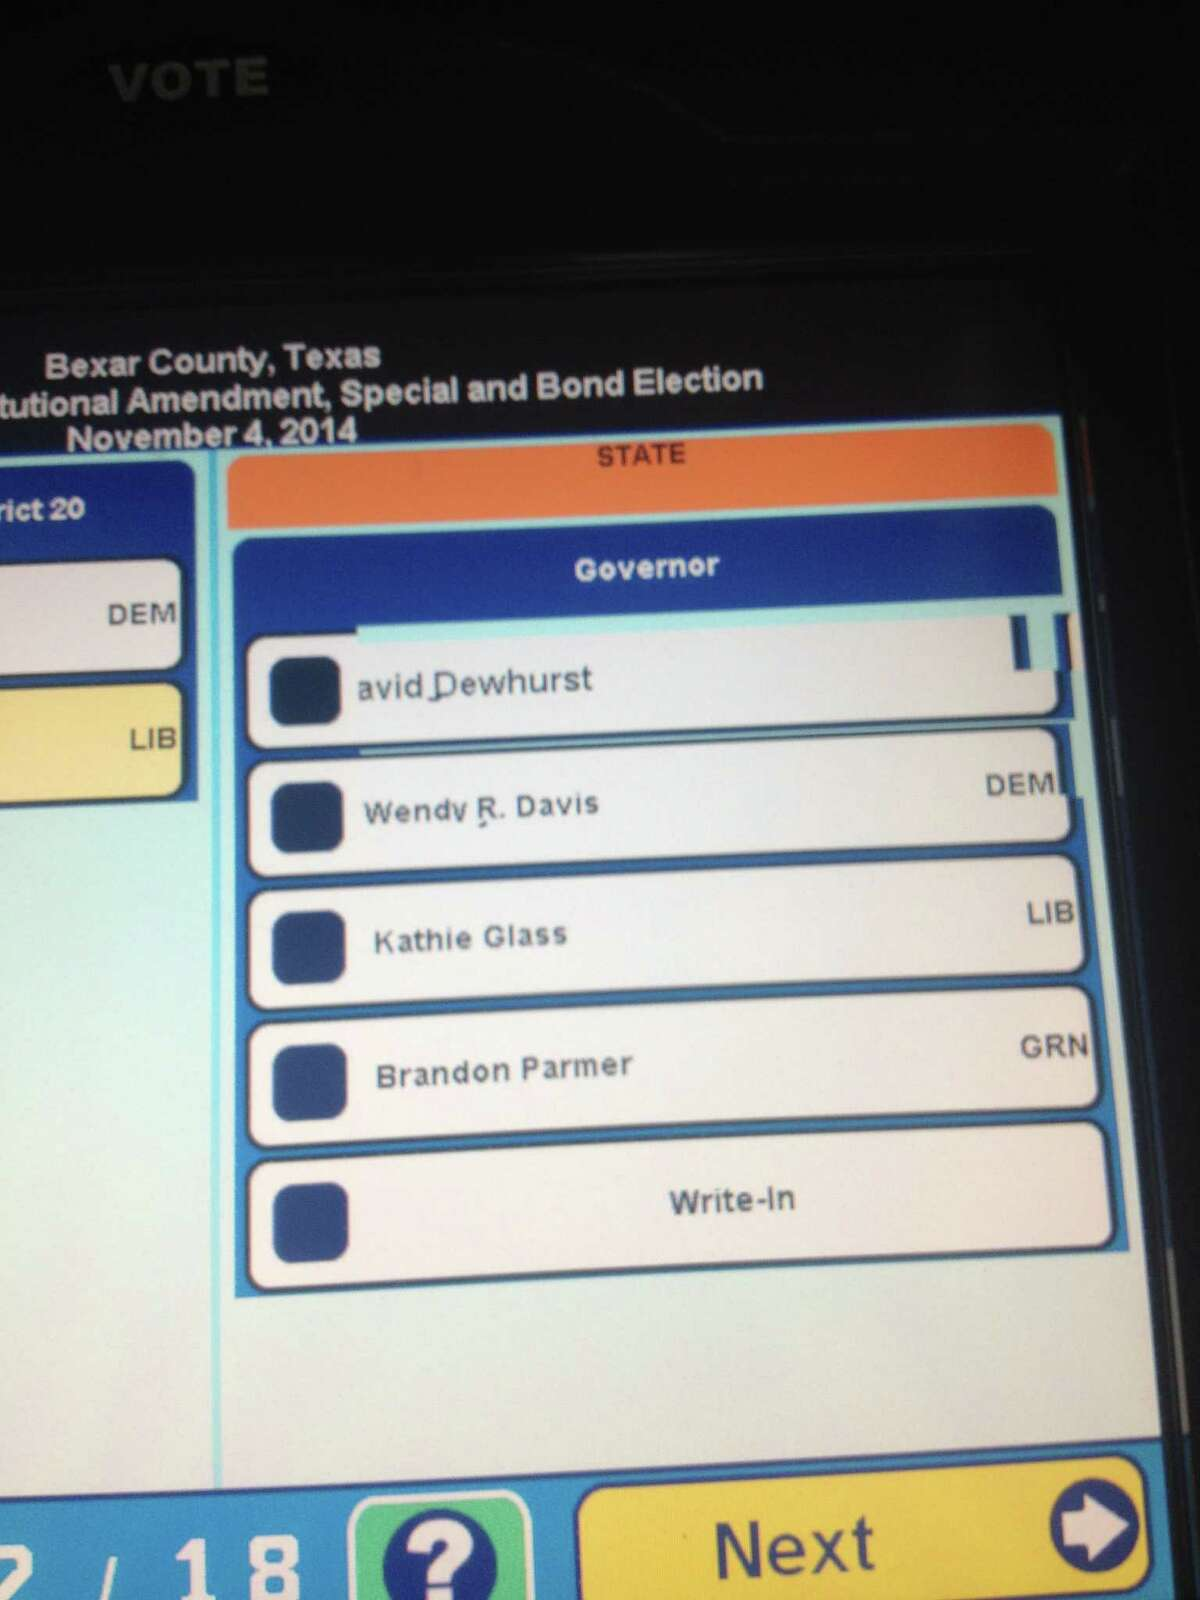 Bexar County ballot that appears to show Republican candidate Greg Abbott's name missing.